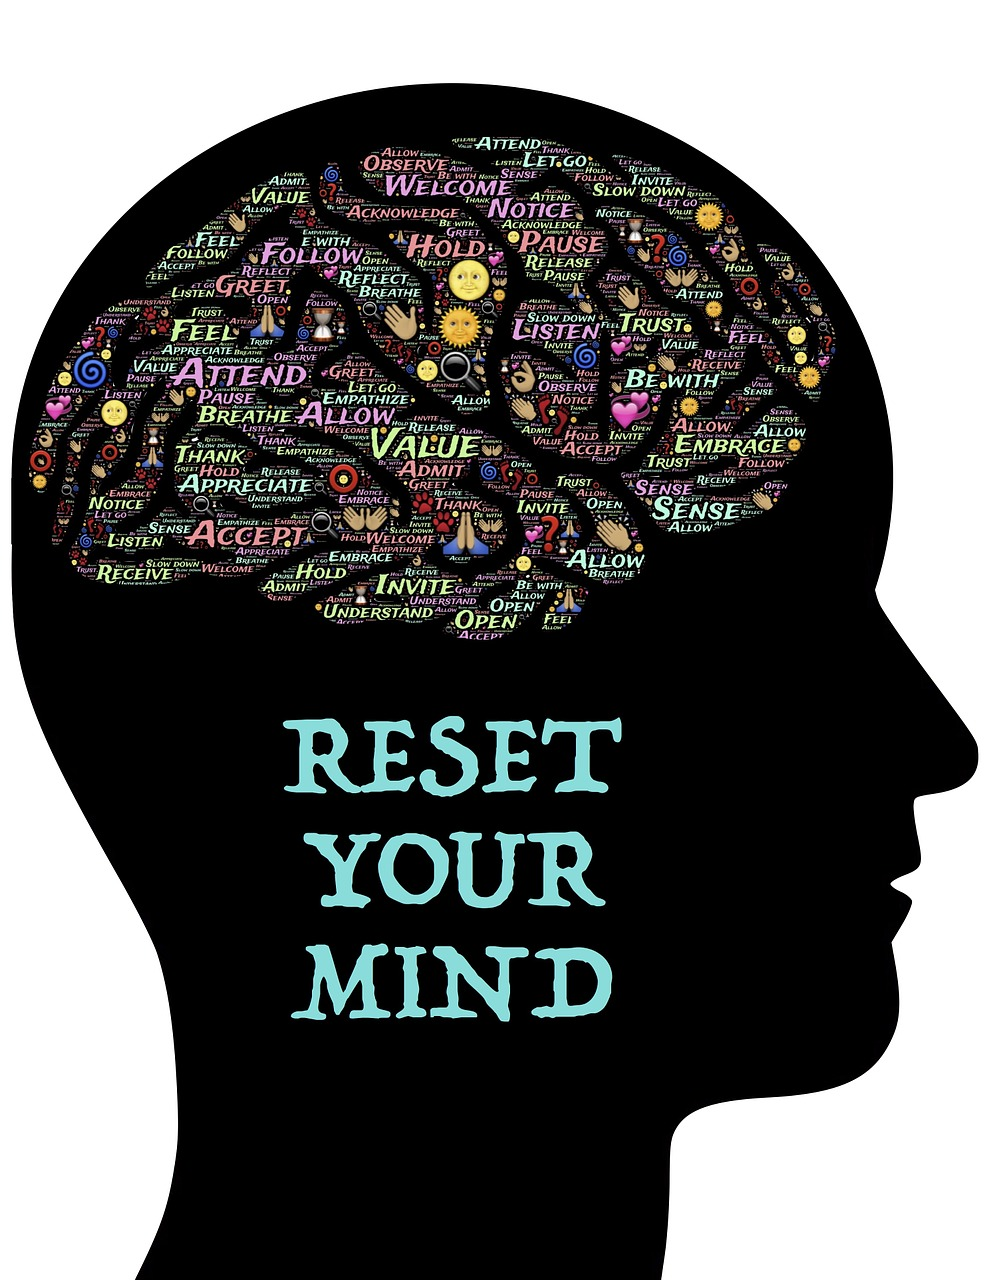 reset your mind, erase bad social conditioning